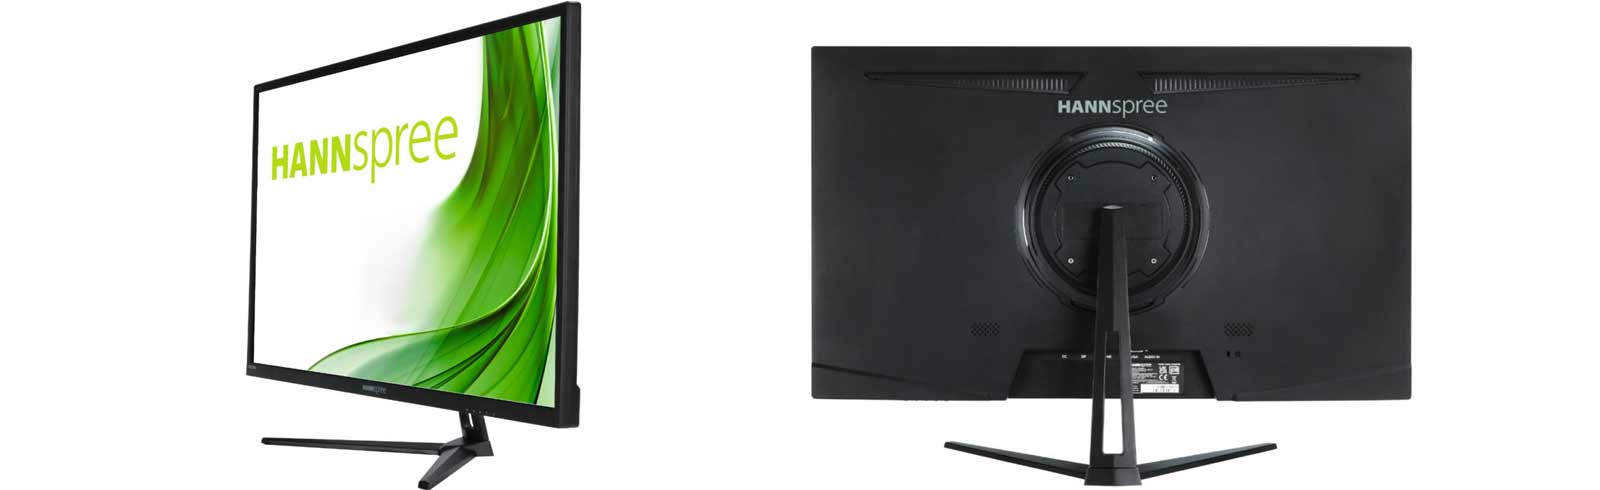 The QHD Hannspree HC322PPB and 4K Hannspree HC284UPB are launching this month